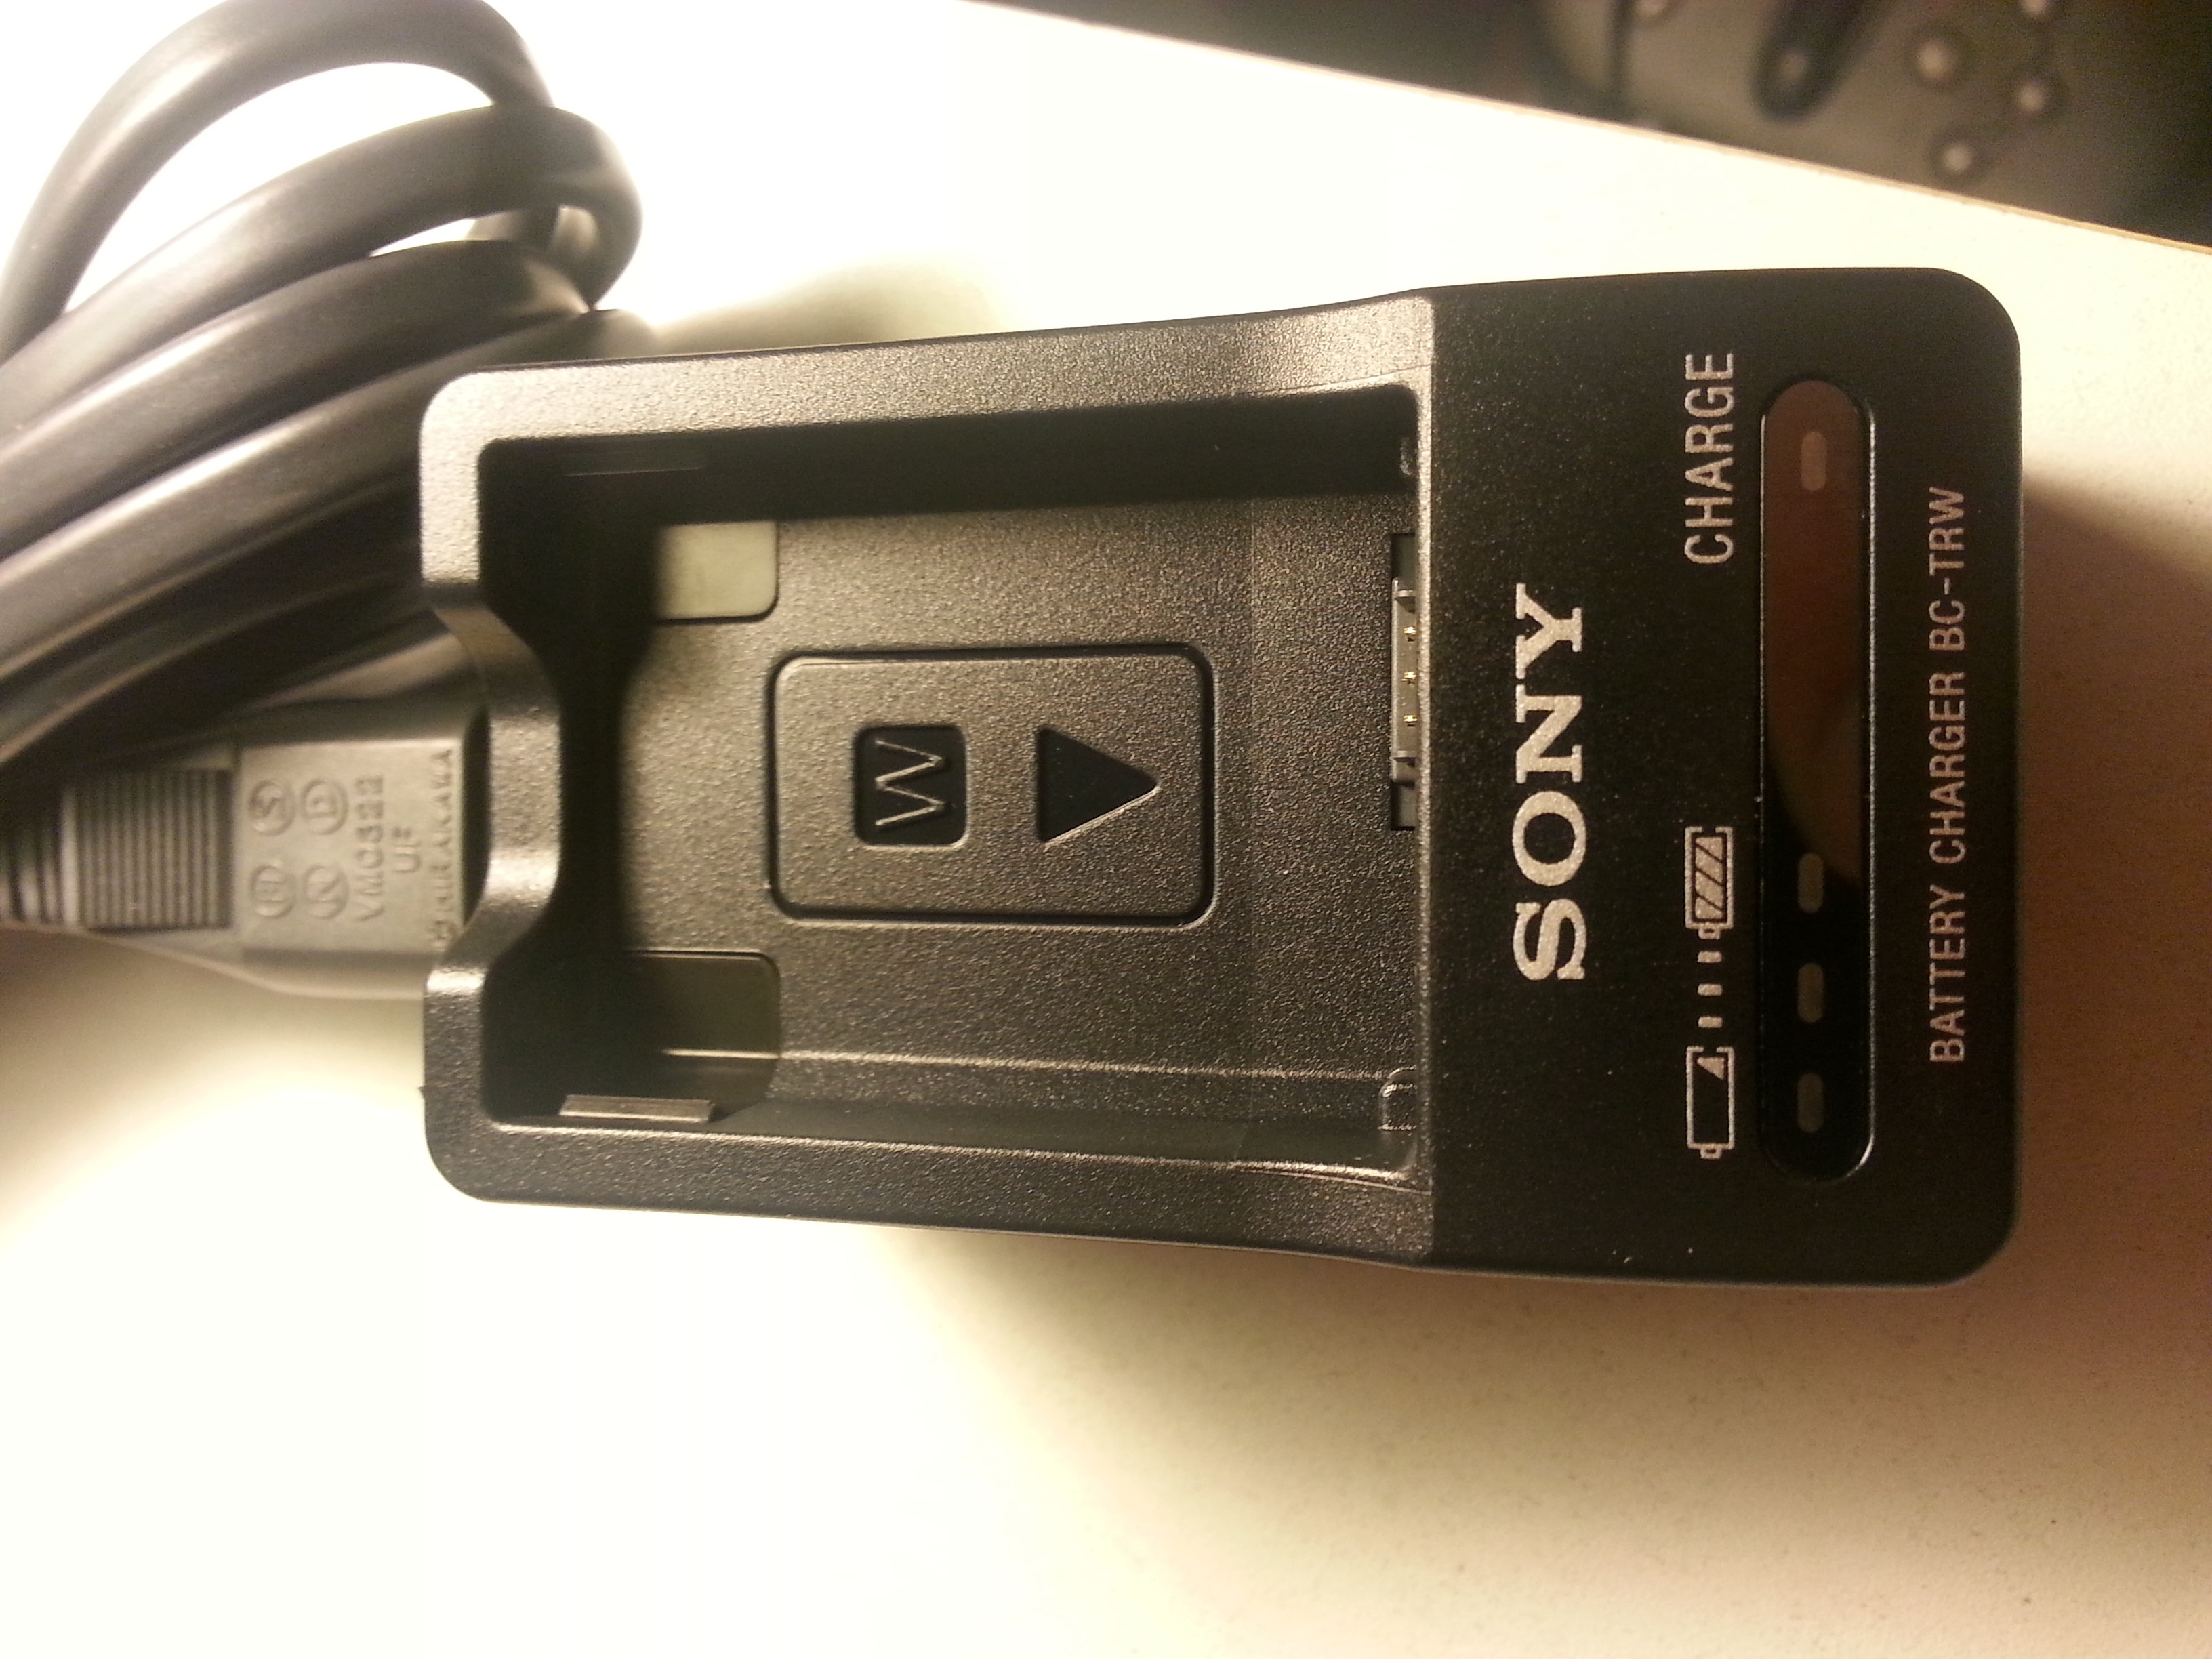 Sony Batterycharger BC-TRW